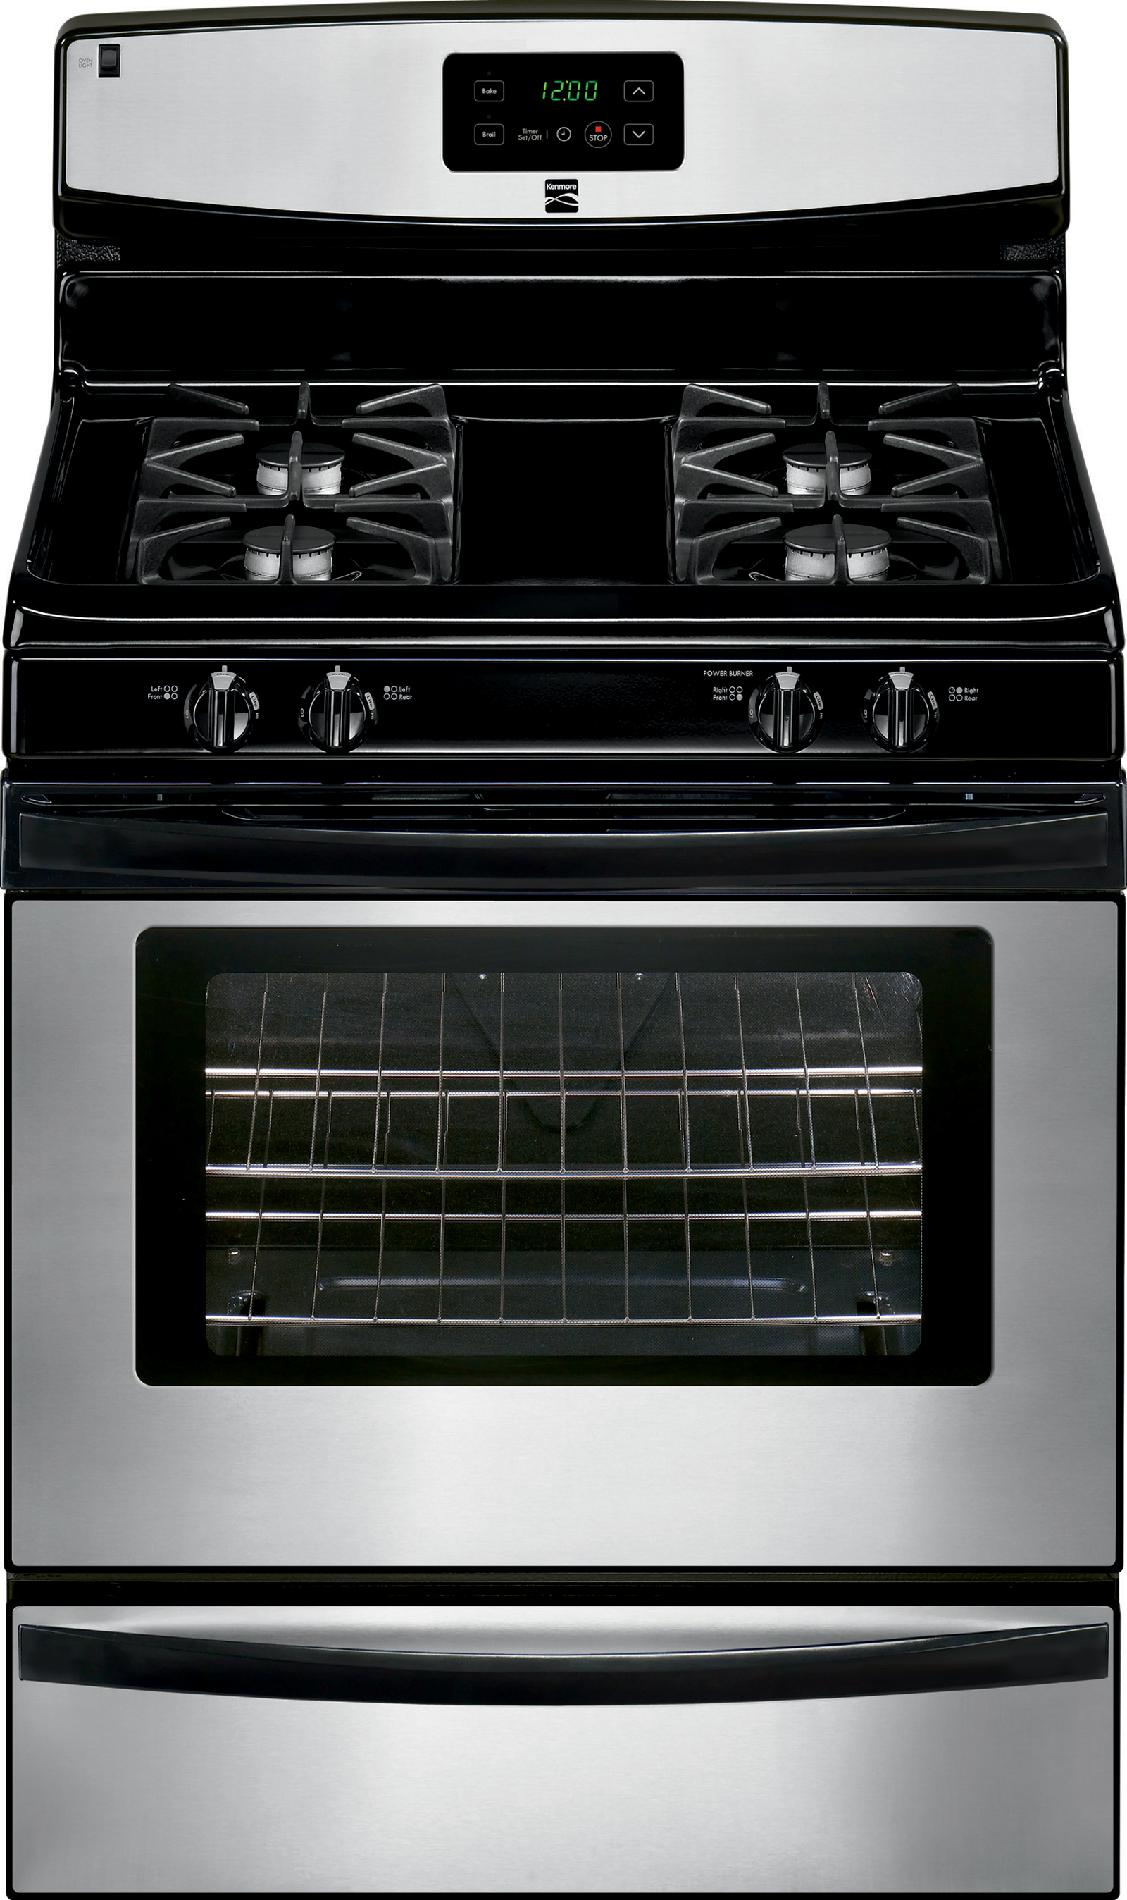 73233-4-2-cu-ft-Gas-Range-w-Broil-Serve-Drawer-Stainless-Steel